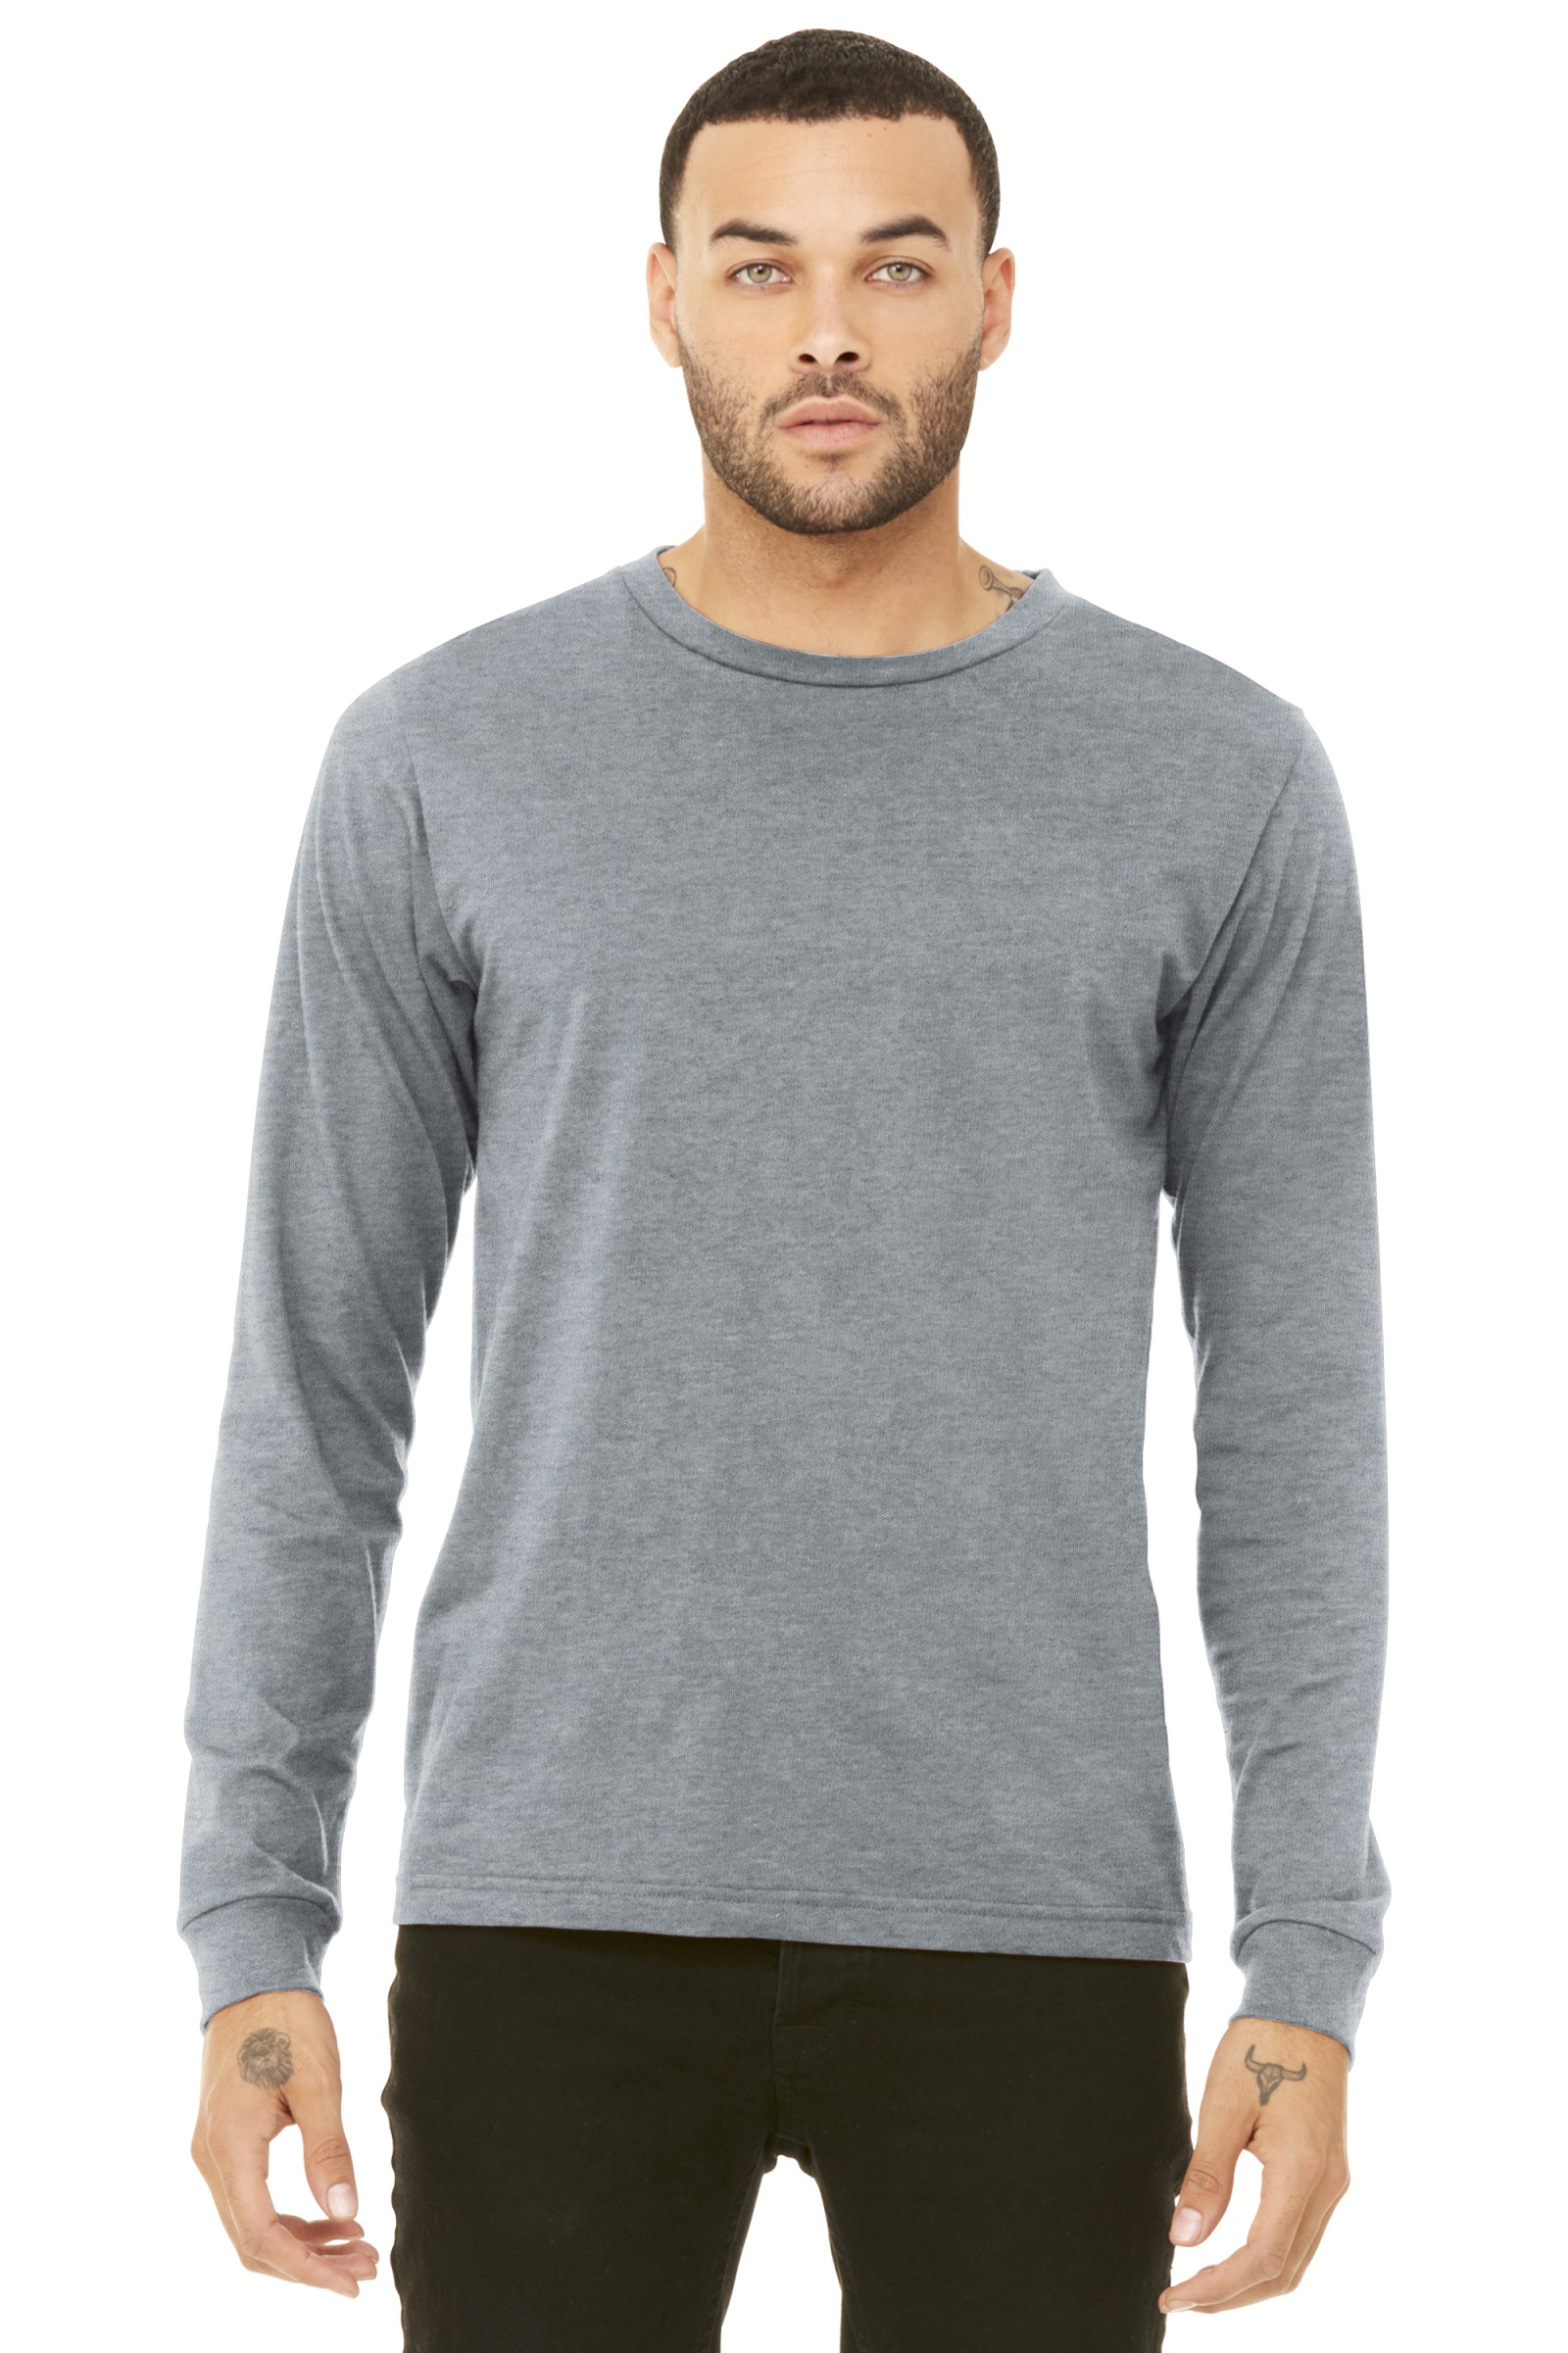 Bella+Canvas Printed Men's Long Sleeve Tee